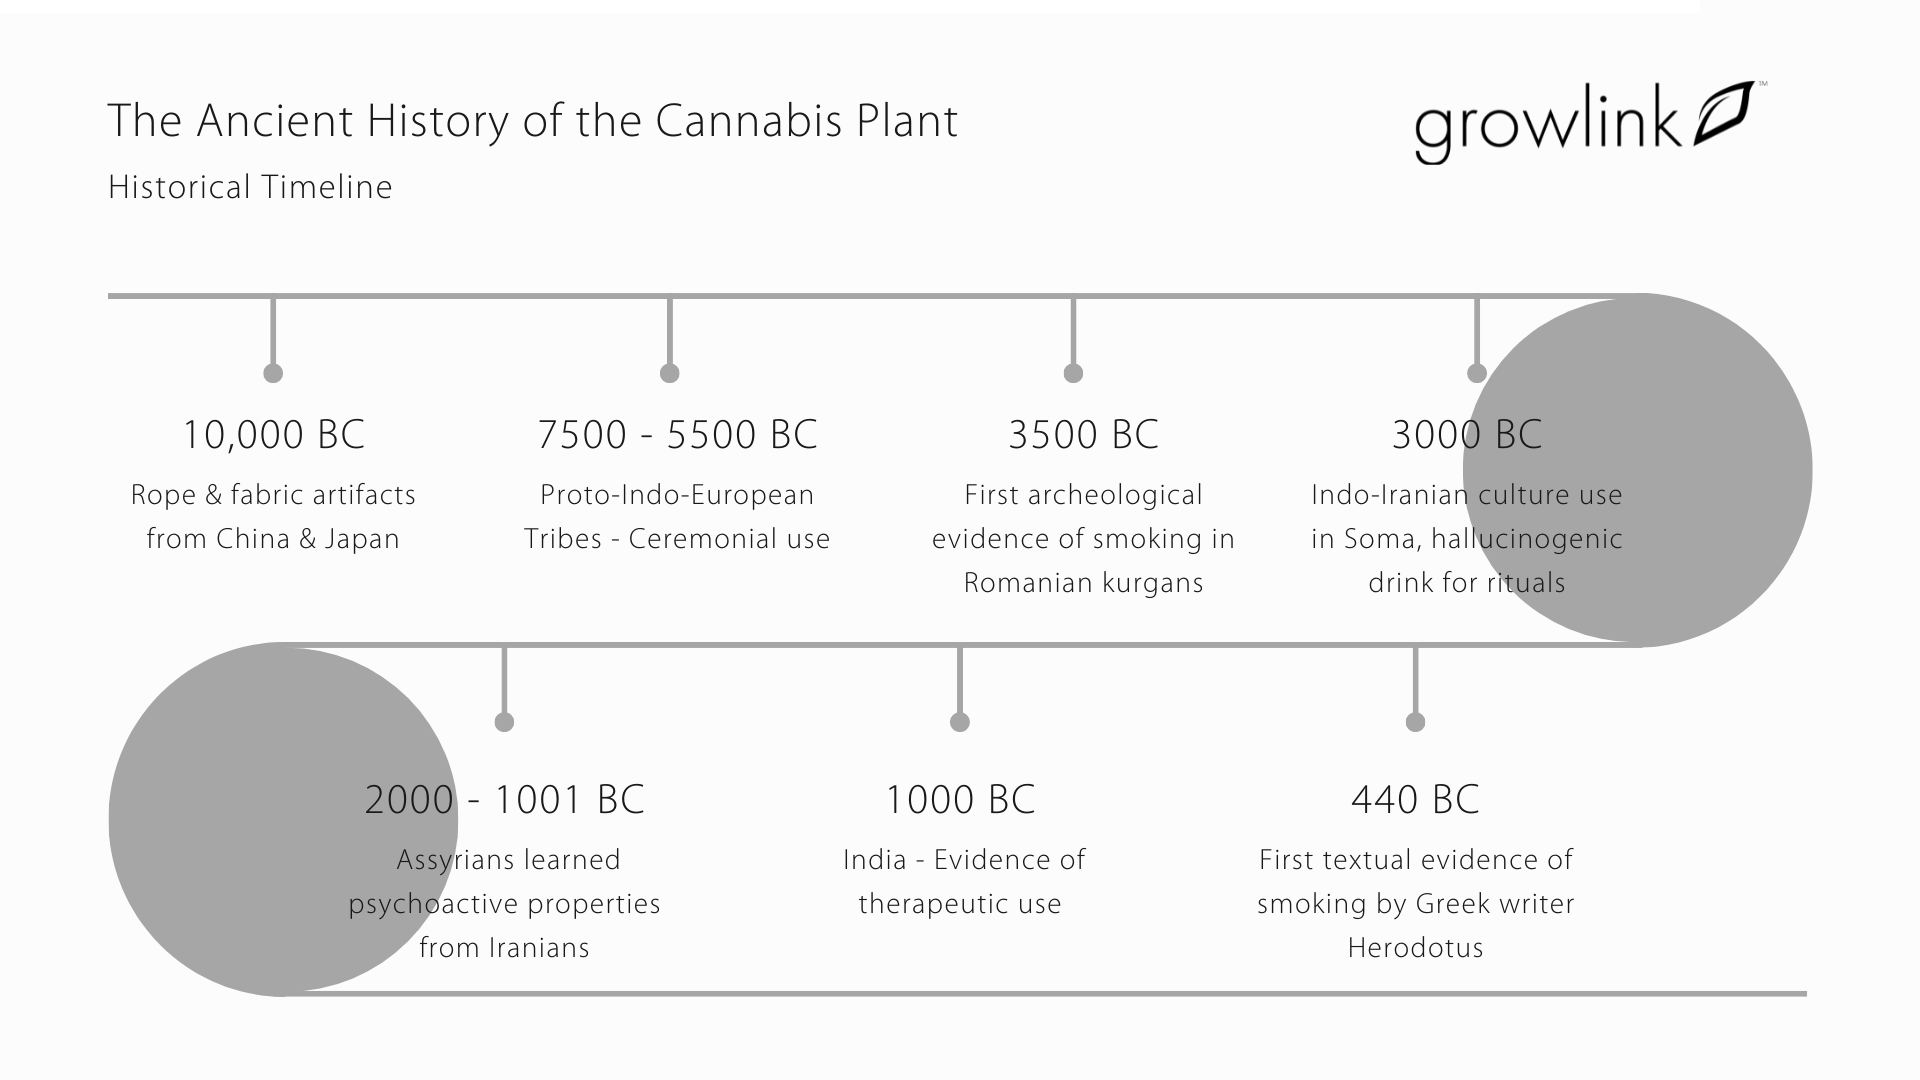 The Ancient History of the Cannabis Plant (3)